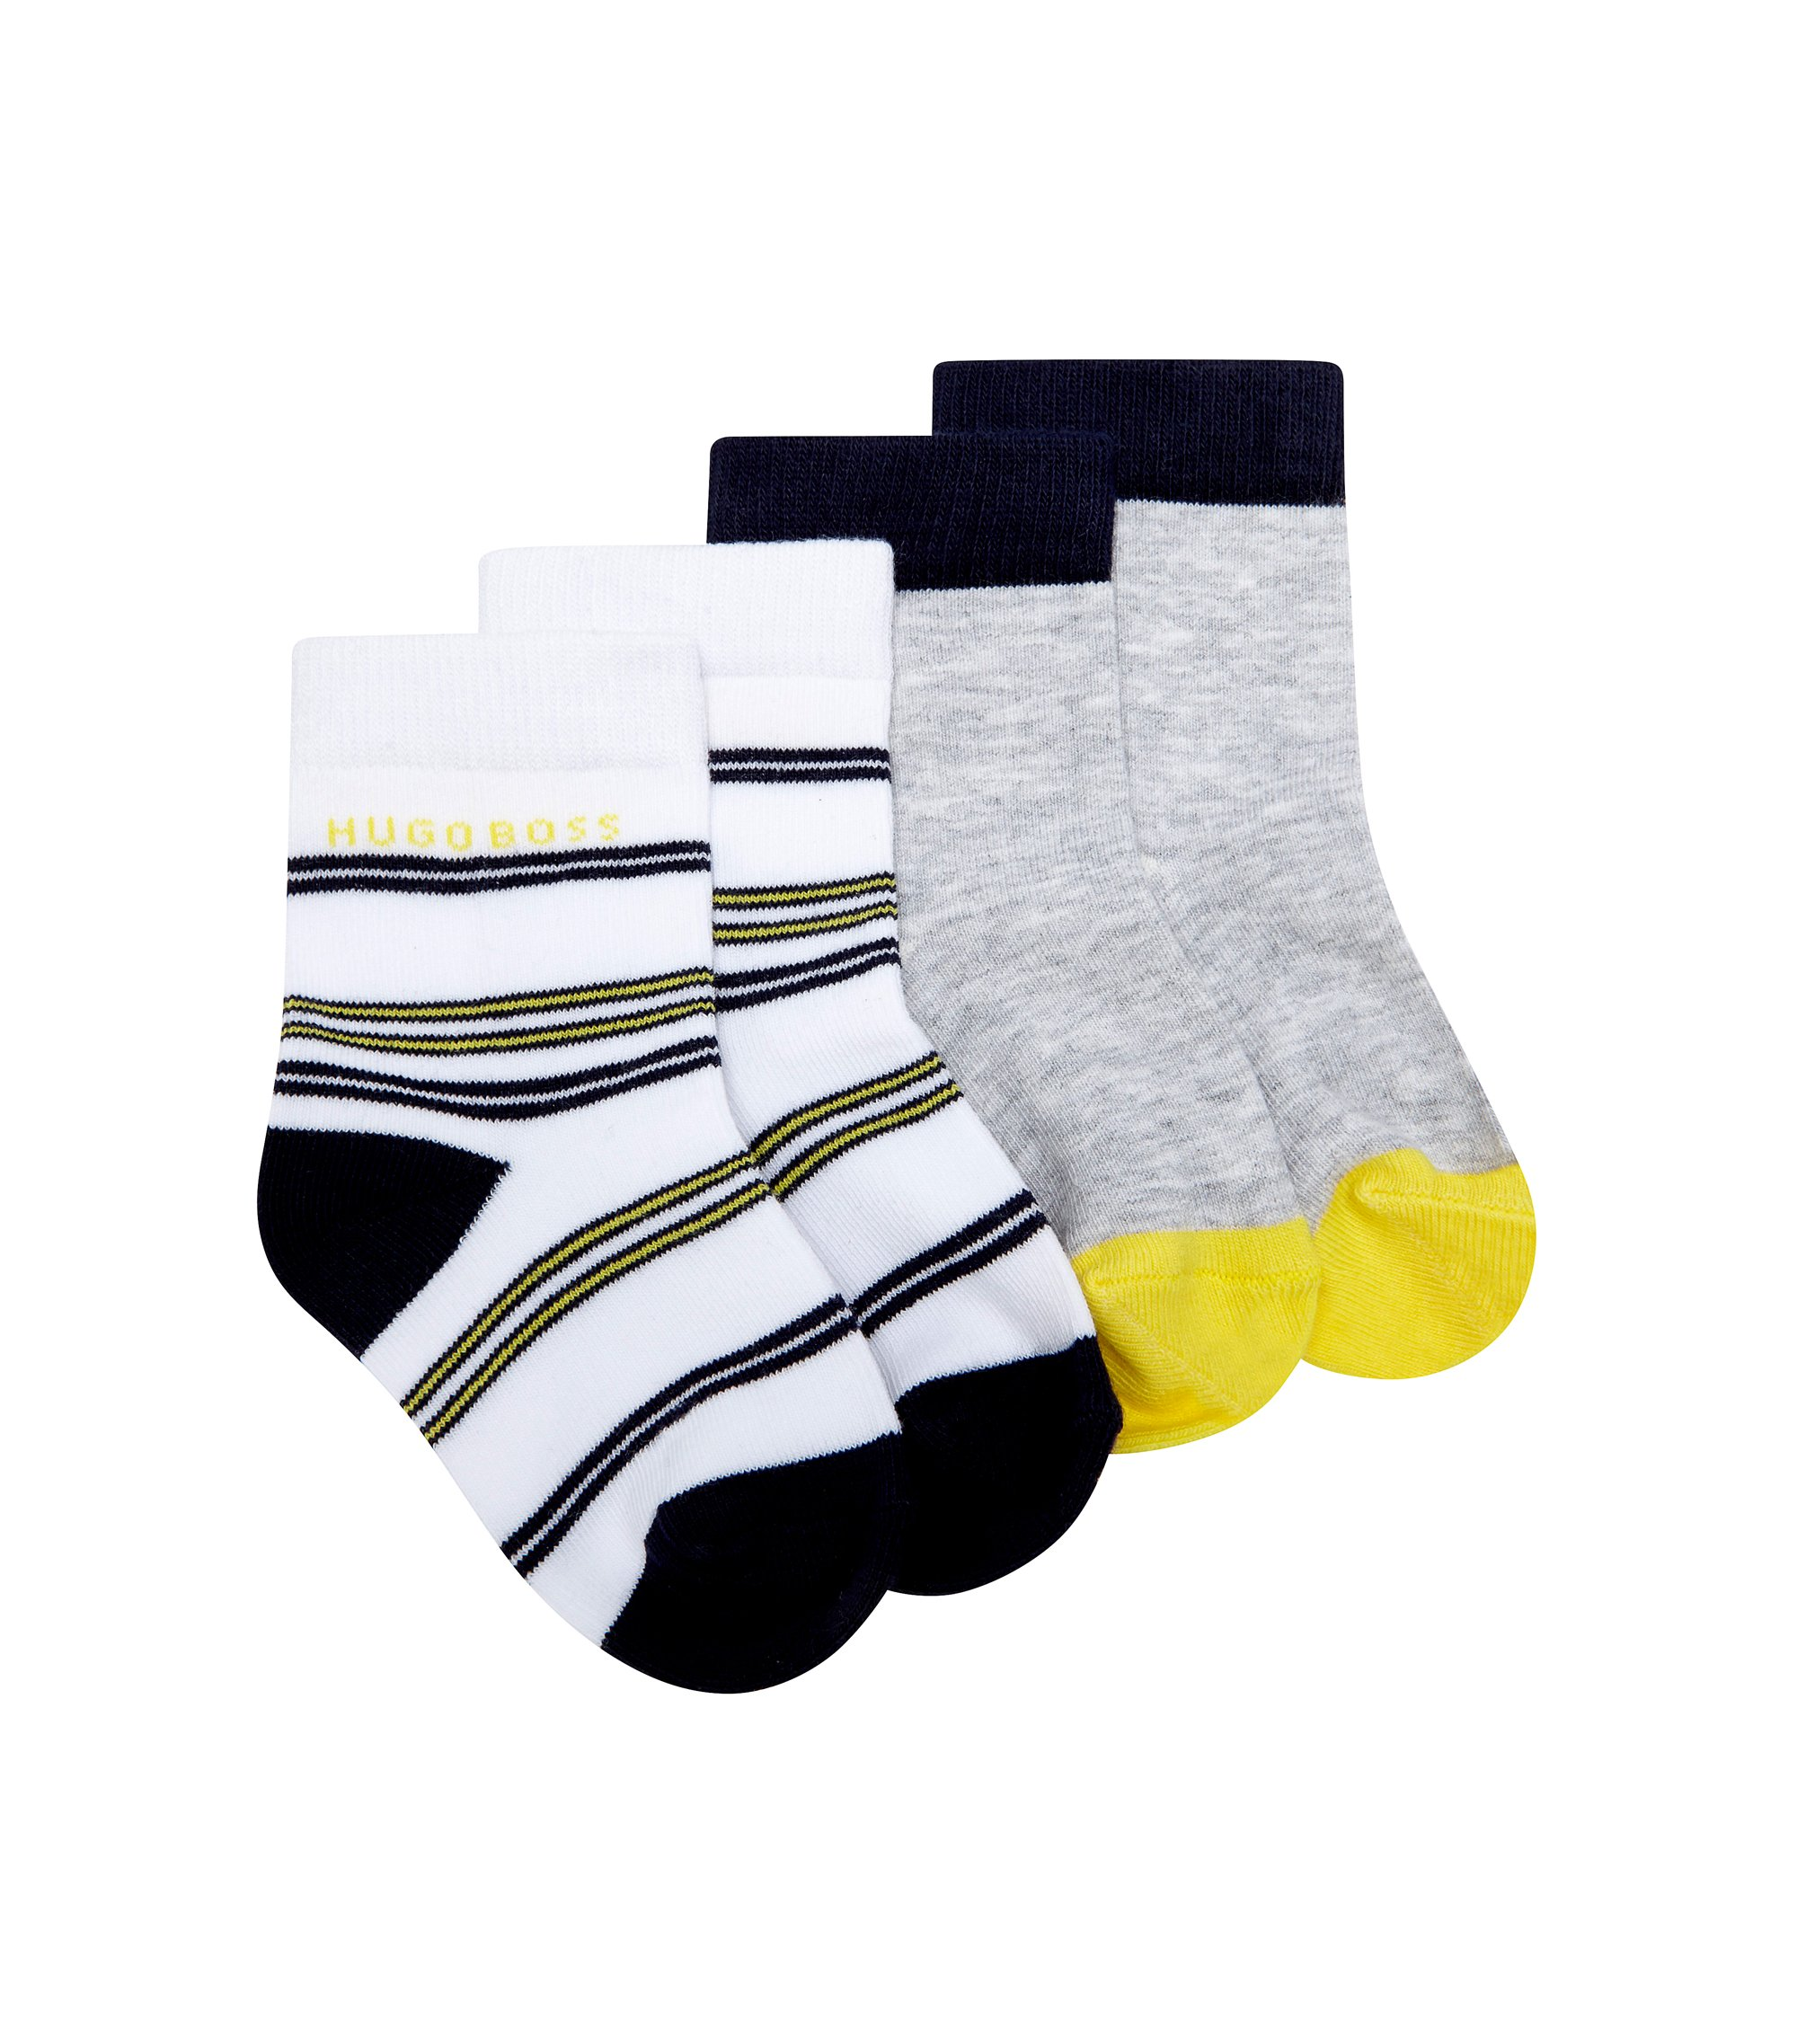 'J00073' | Two Pack Striped and Colorblock Socks, White